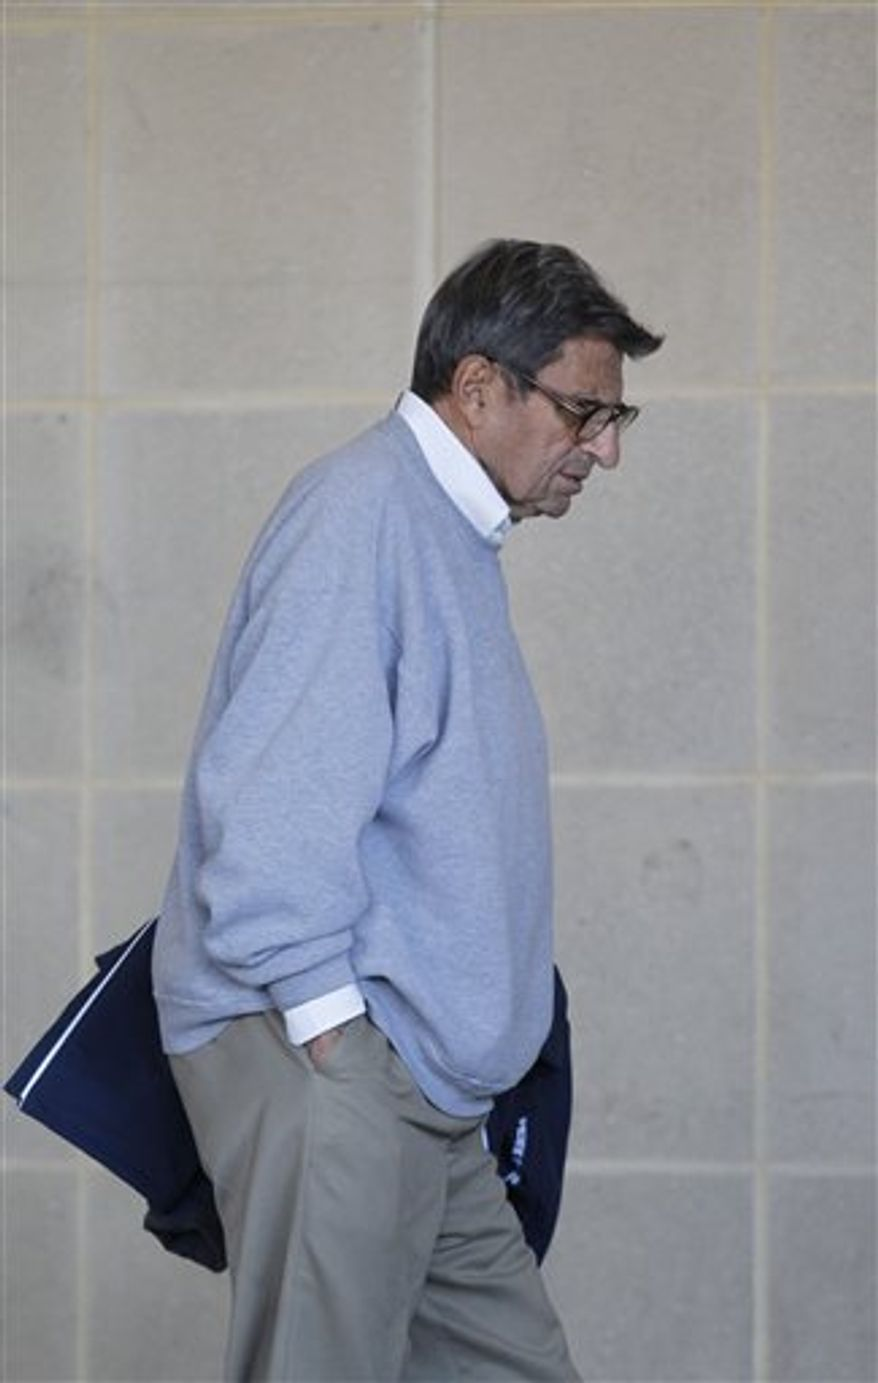 Penn State coach Joe Paterno leaves the Louis and Mildred Lasch Football Building on campus Tuesday, Nov. 8, 2011, in State College, Pa. Paterno made his first public comments since being fired two months ago to The Washington Post. (AP Photo/Matt Rourke)